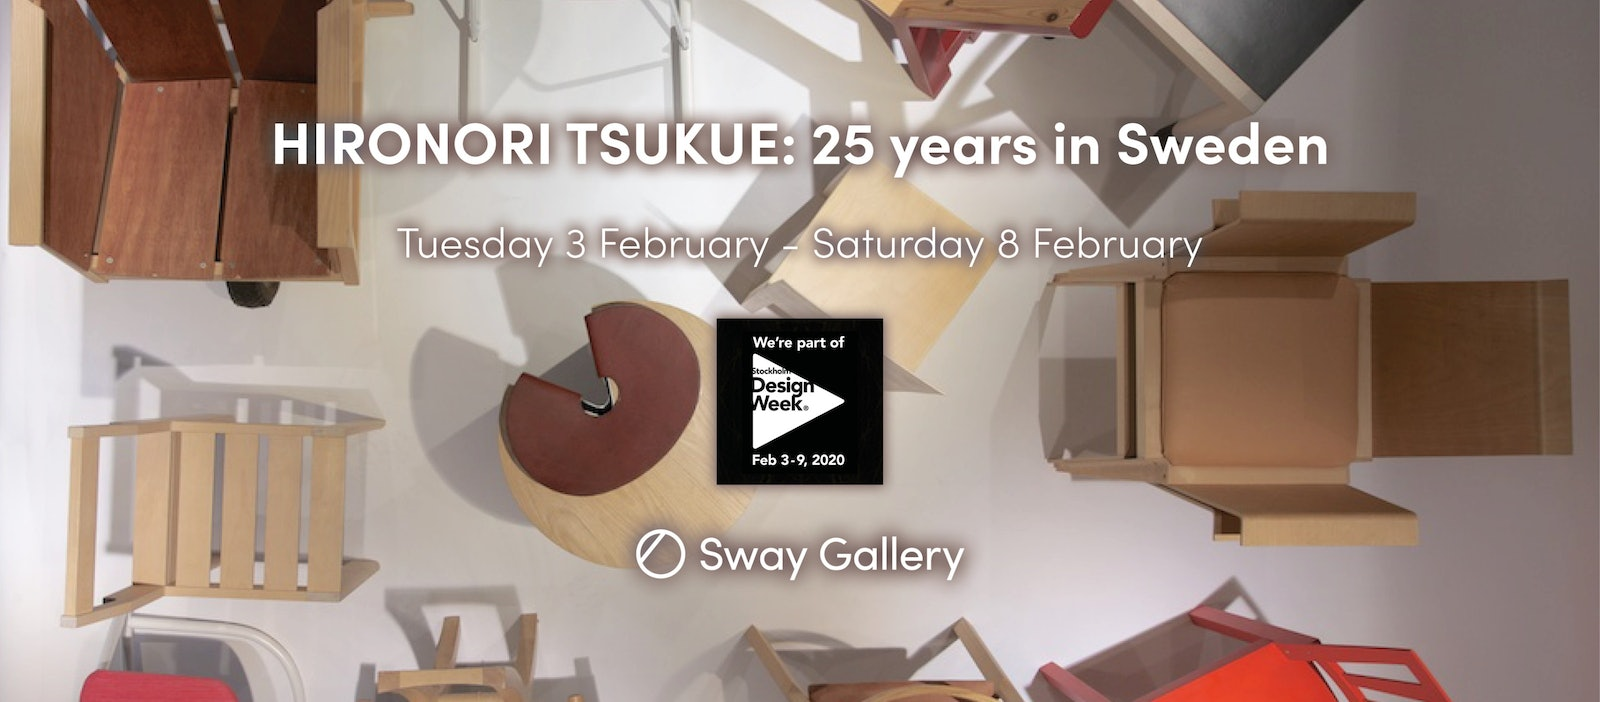 HIRONORI TSUKUE: 25 YEARS IN SWEDEN // 3 - 8 February 2020